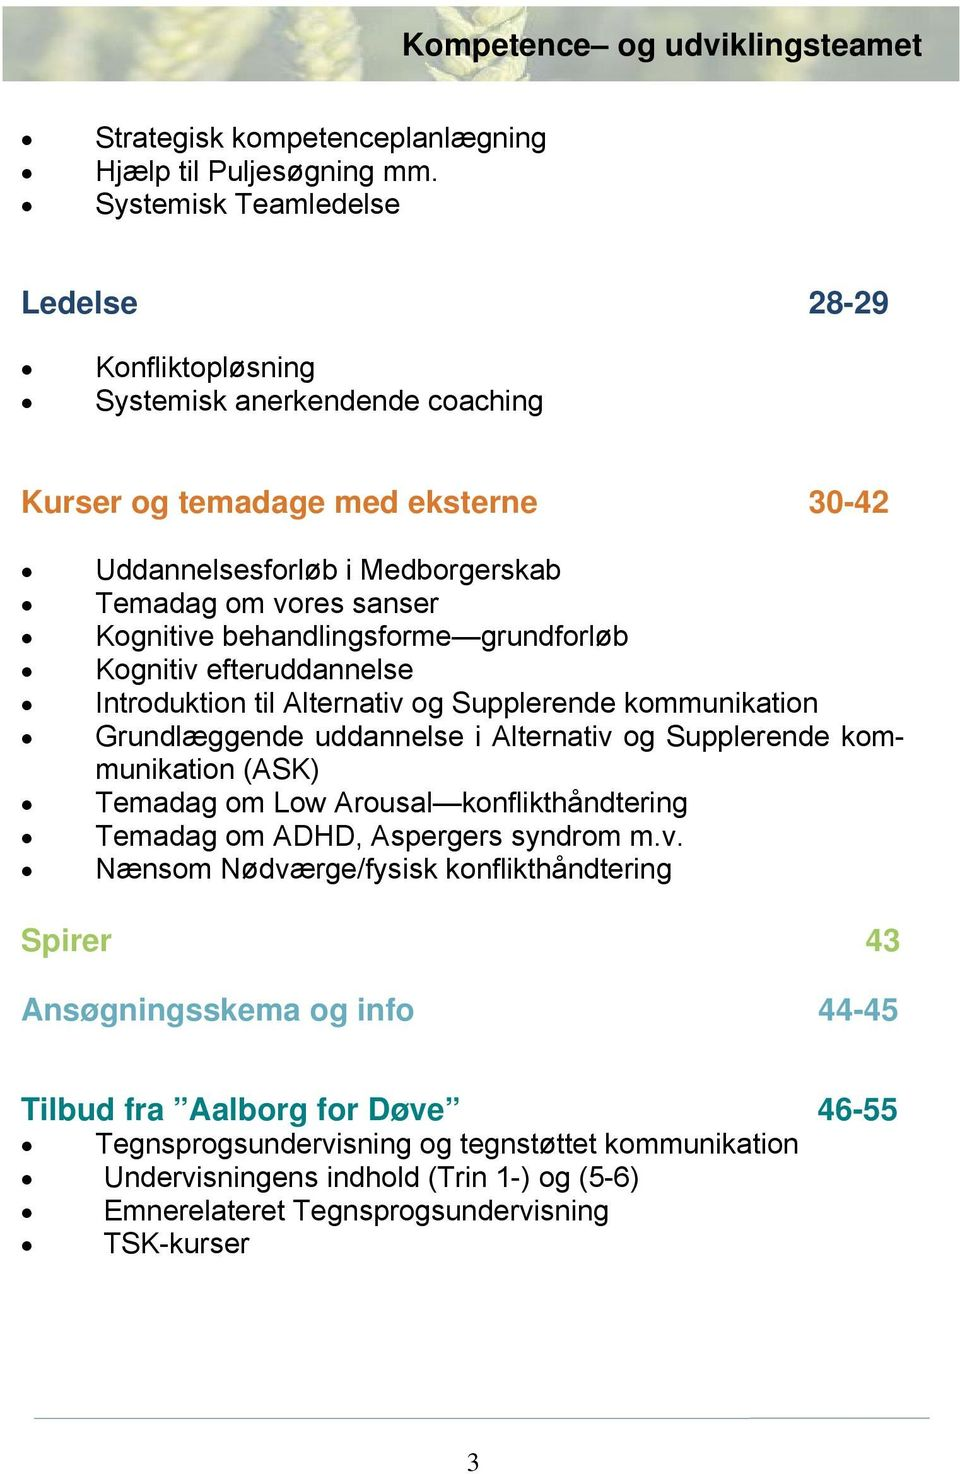 behandlingsforme grundforløb Kognitiv efteruddannelse Introduktion til Alternativ og Supplerende kommunikation Grundlæggende uddannelse i Alternativ og Supplerende kommunikation (ASK) Temadag om Low